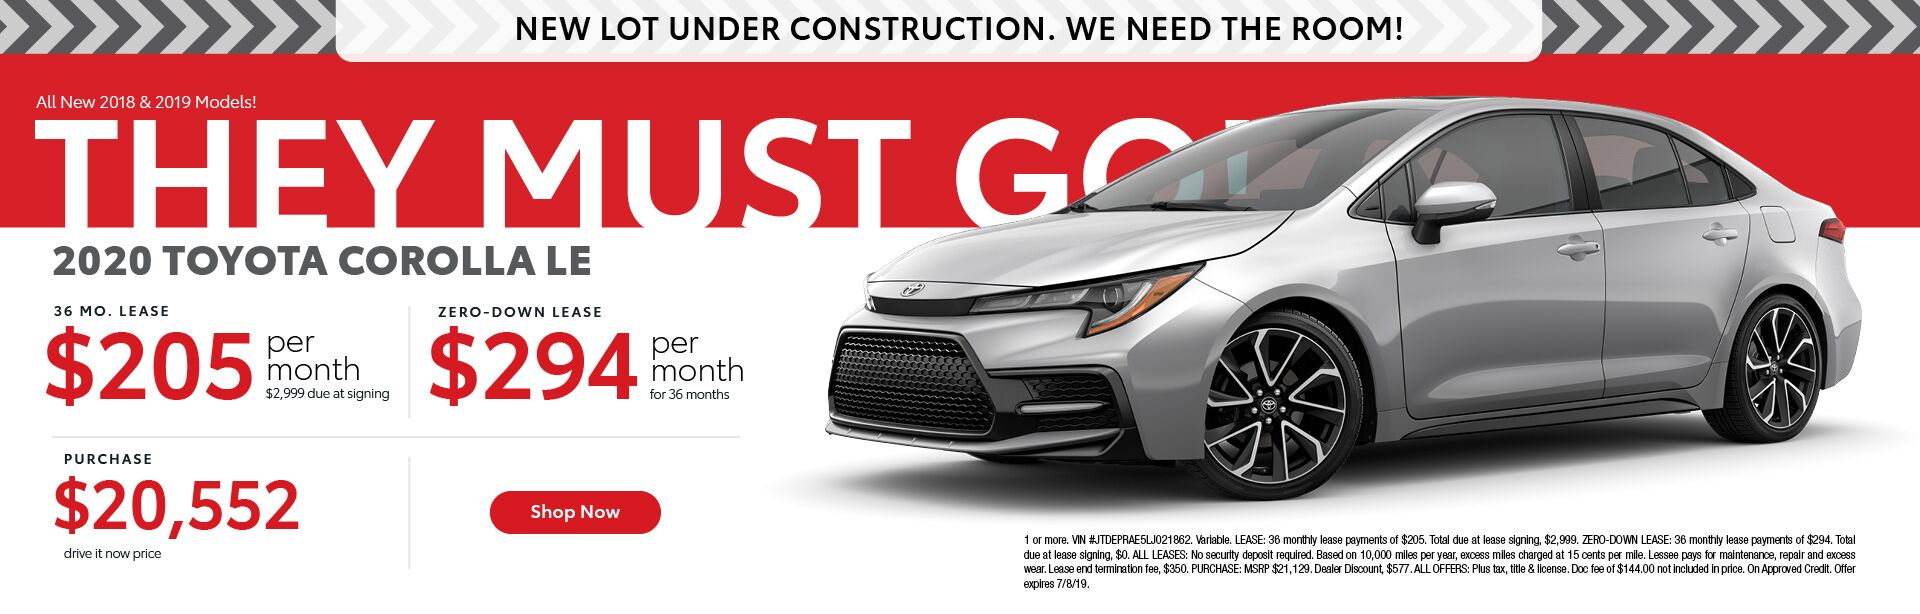 2020 Toyota Corolla LE $205 per month for 36 months with $2,999 due at signing - $294 per month for 36 months with zero down -